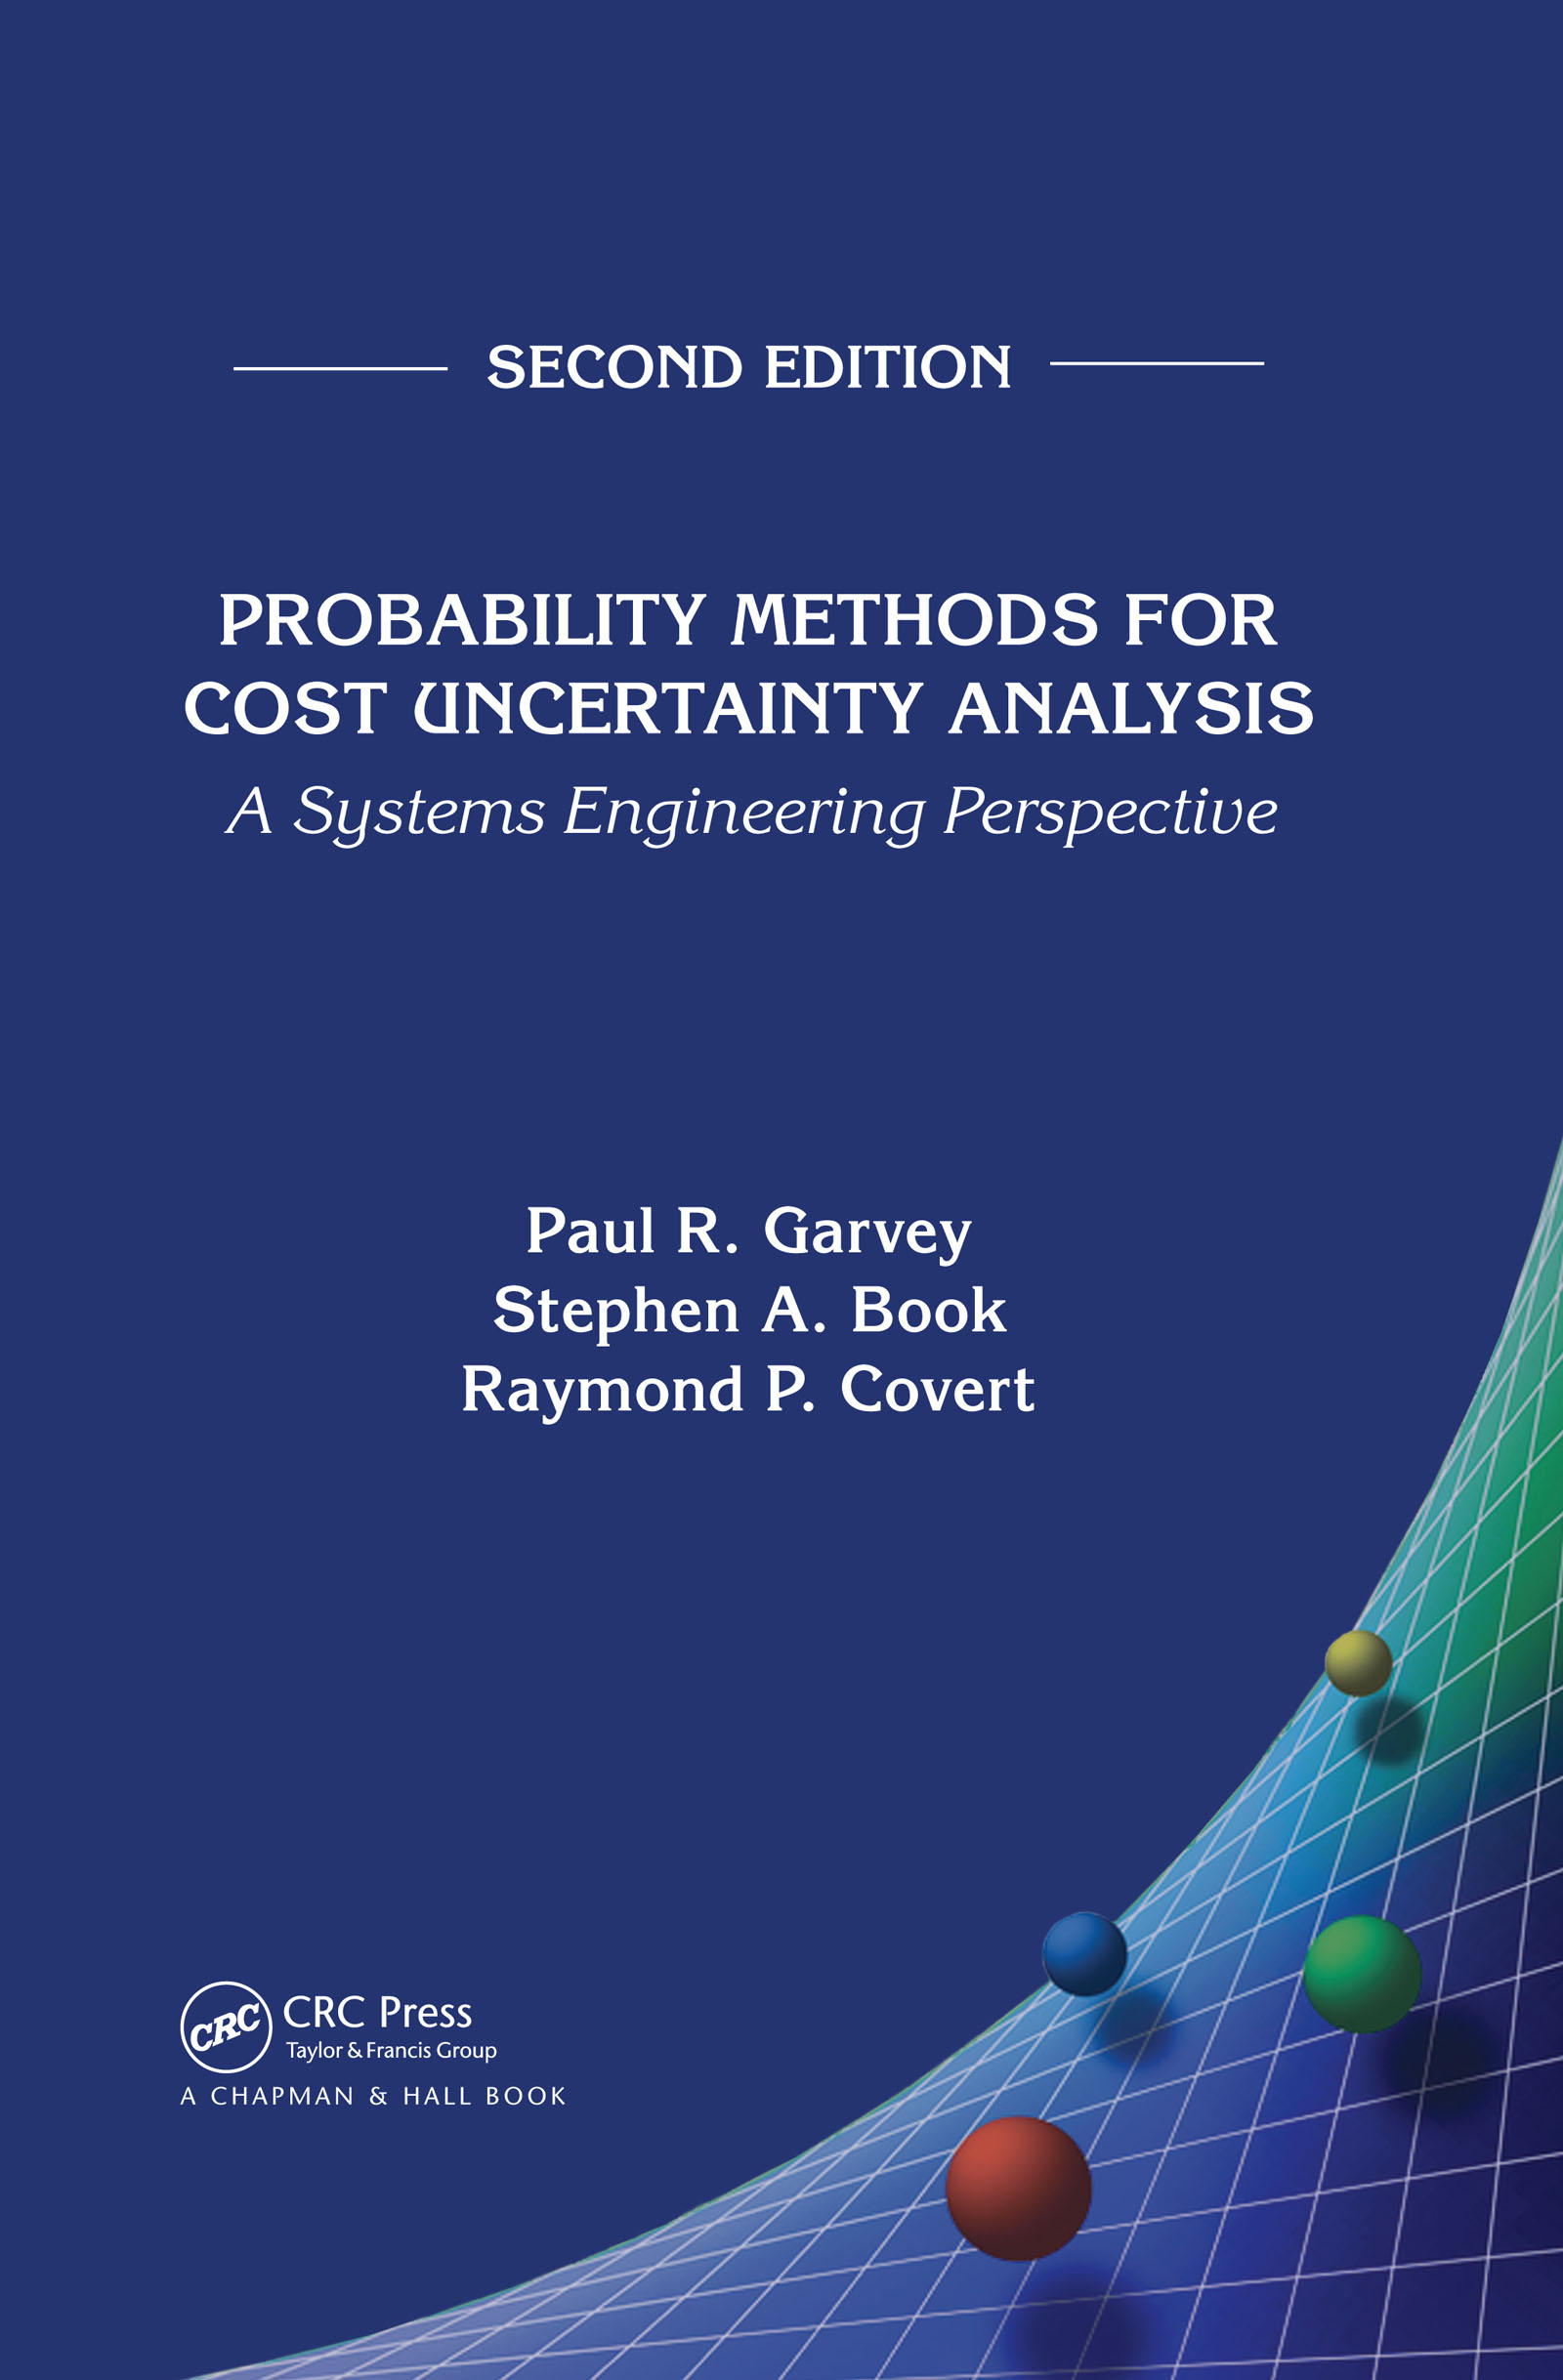 Probability Methods for Cost Uncertainty Analysis